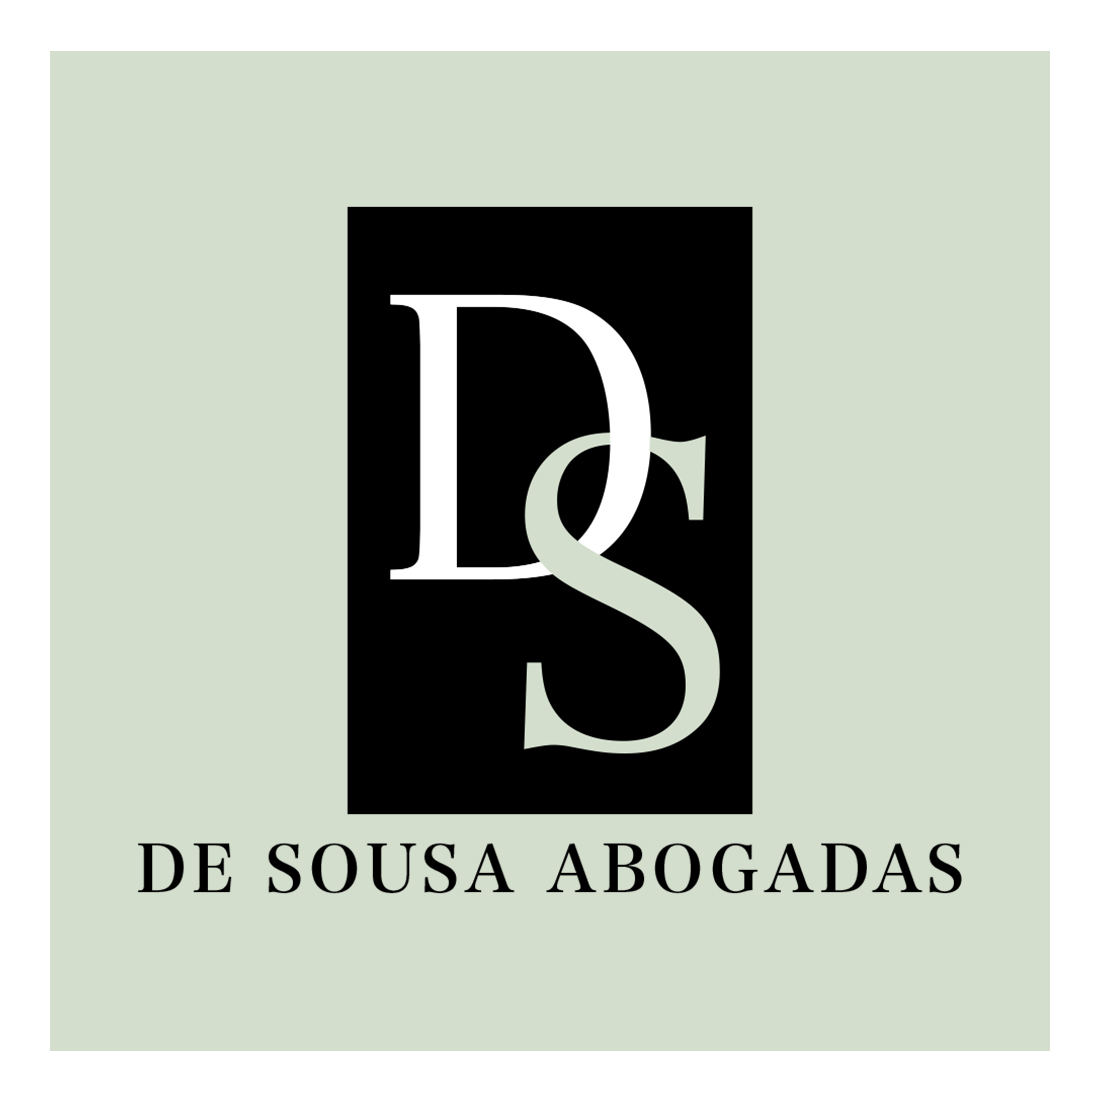 DE SOUSA ABOGADAS. BOUTIQUE LEGAL